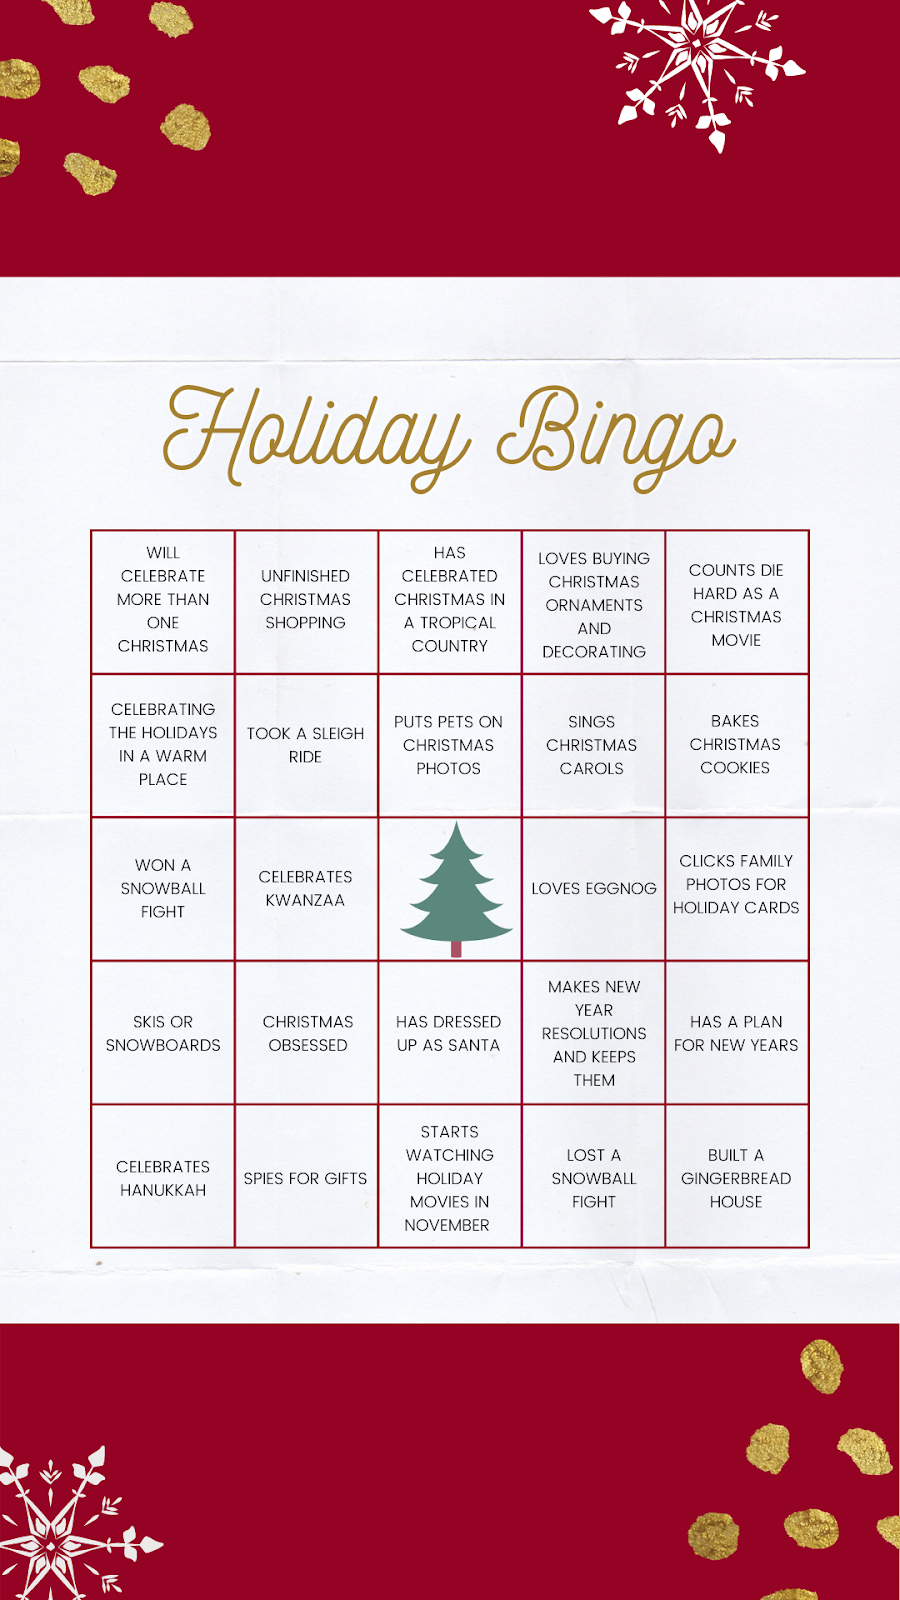 A template for a holiday bingo game, one of the many virtual holiday party ideas for work